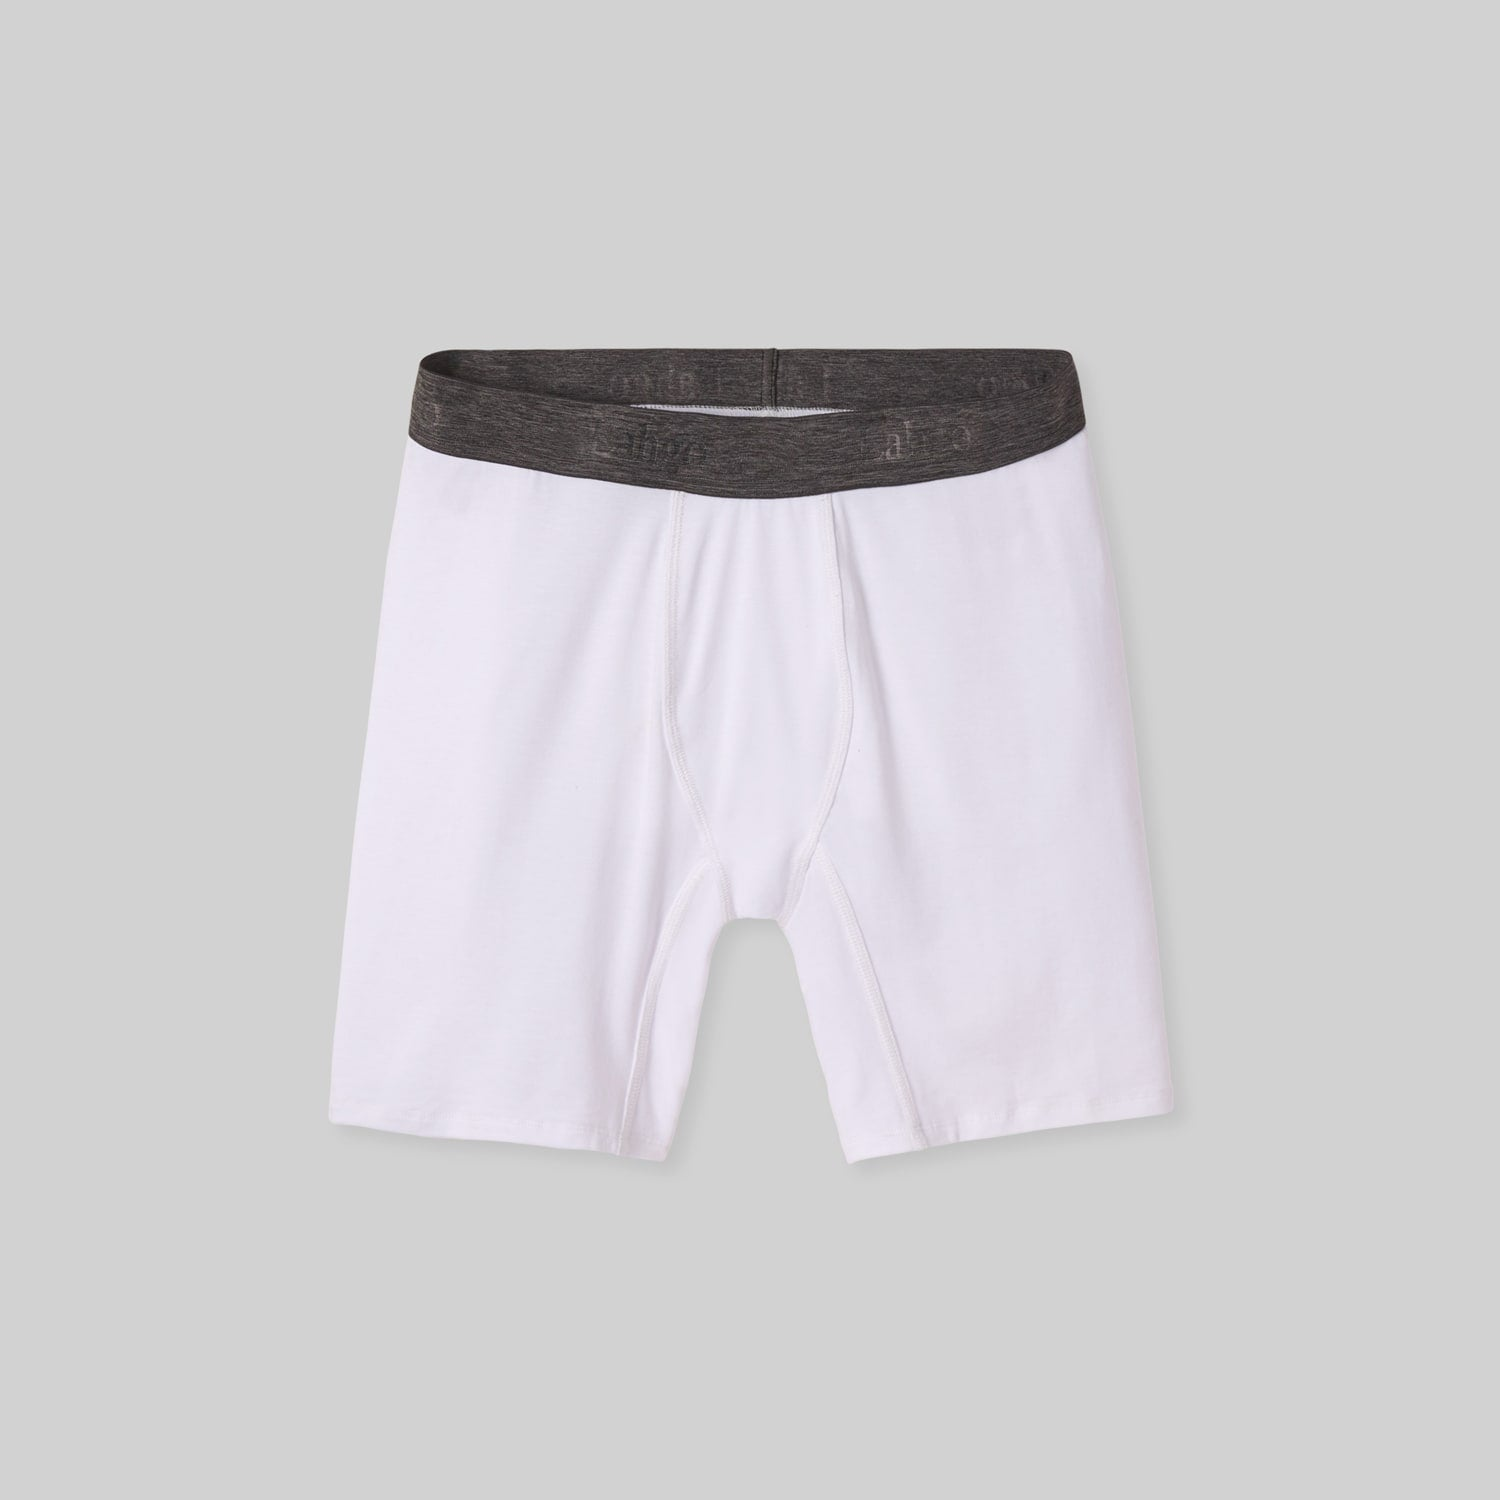 Lahgo Sleepwear Supportive Modal Boxer Brief - #White